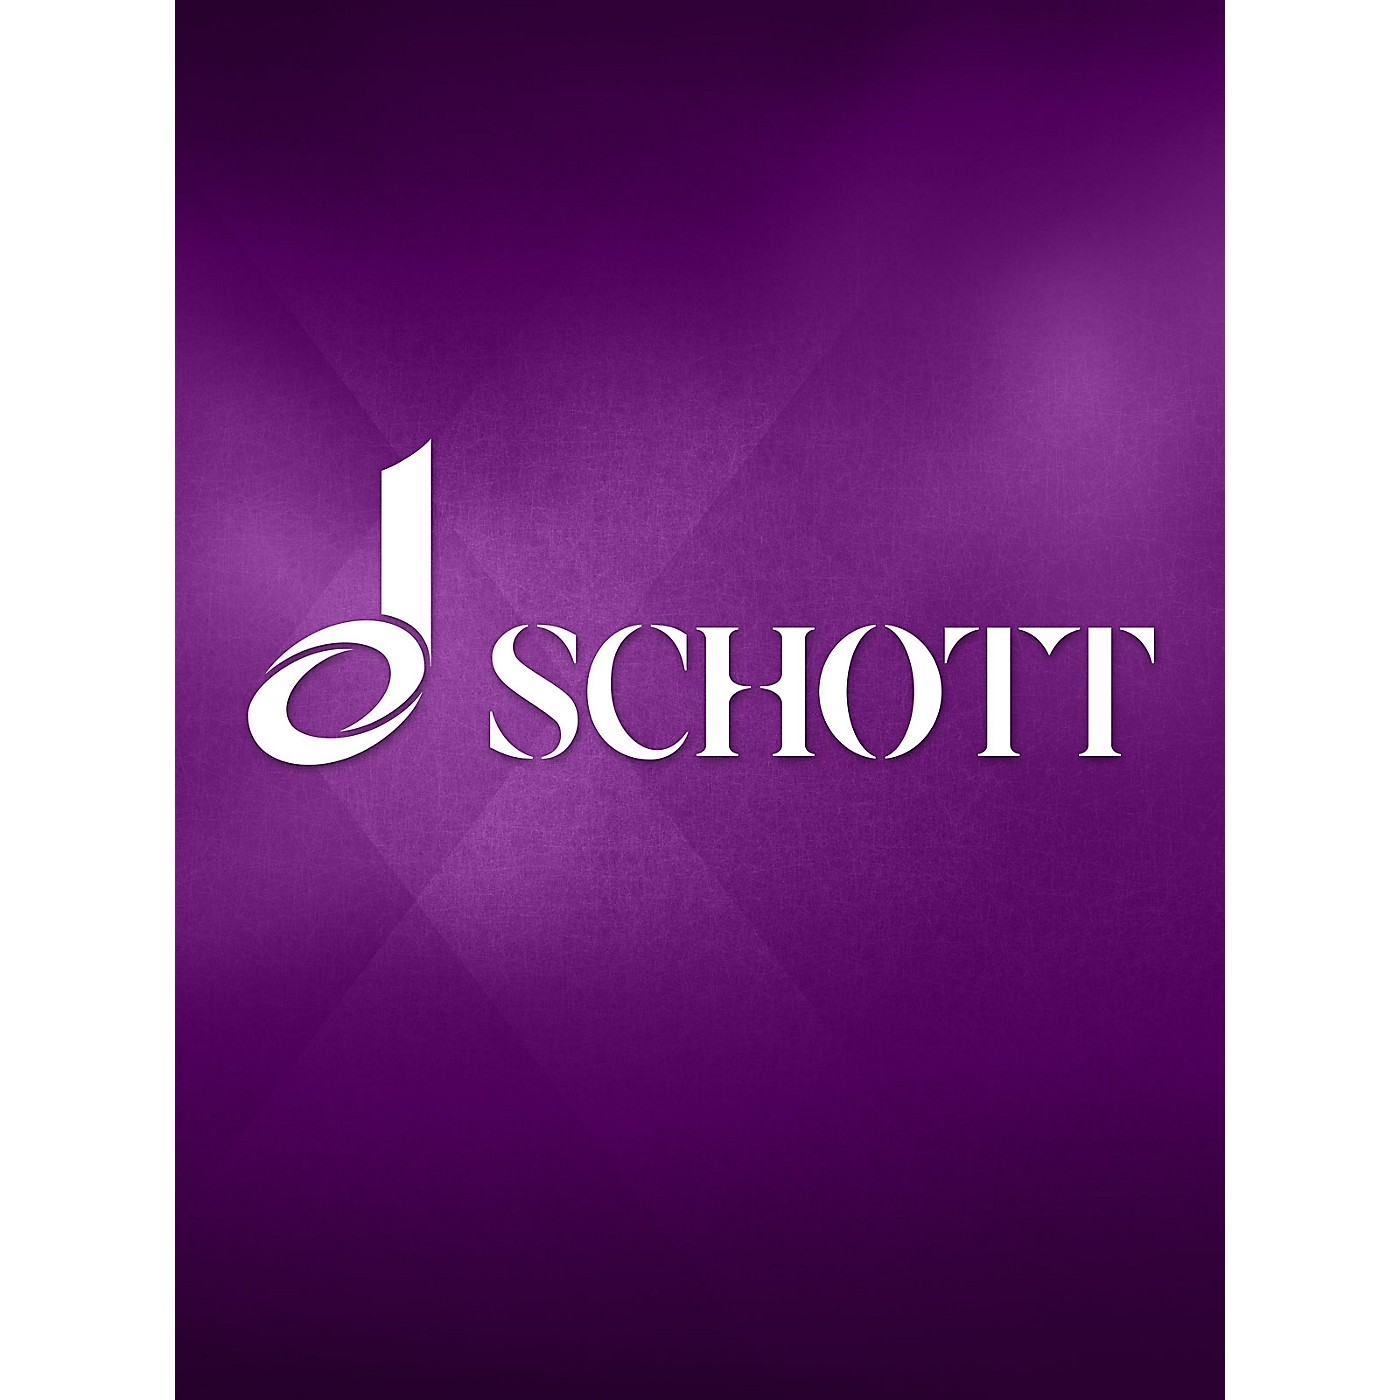 Schott Toccata Op. 33 (Piano Reduction for 2 Pianos) Schott Series thumbnail